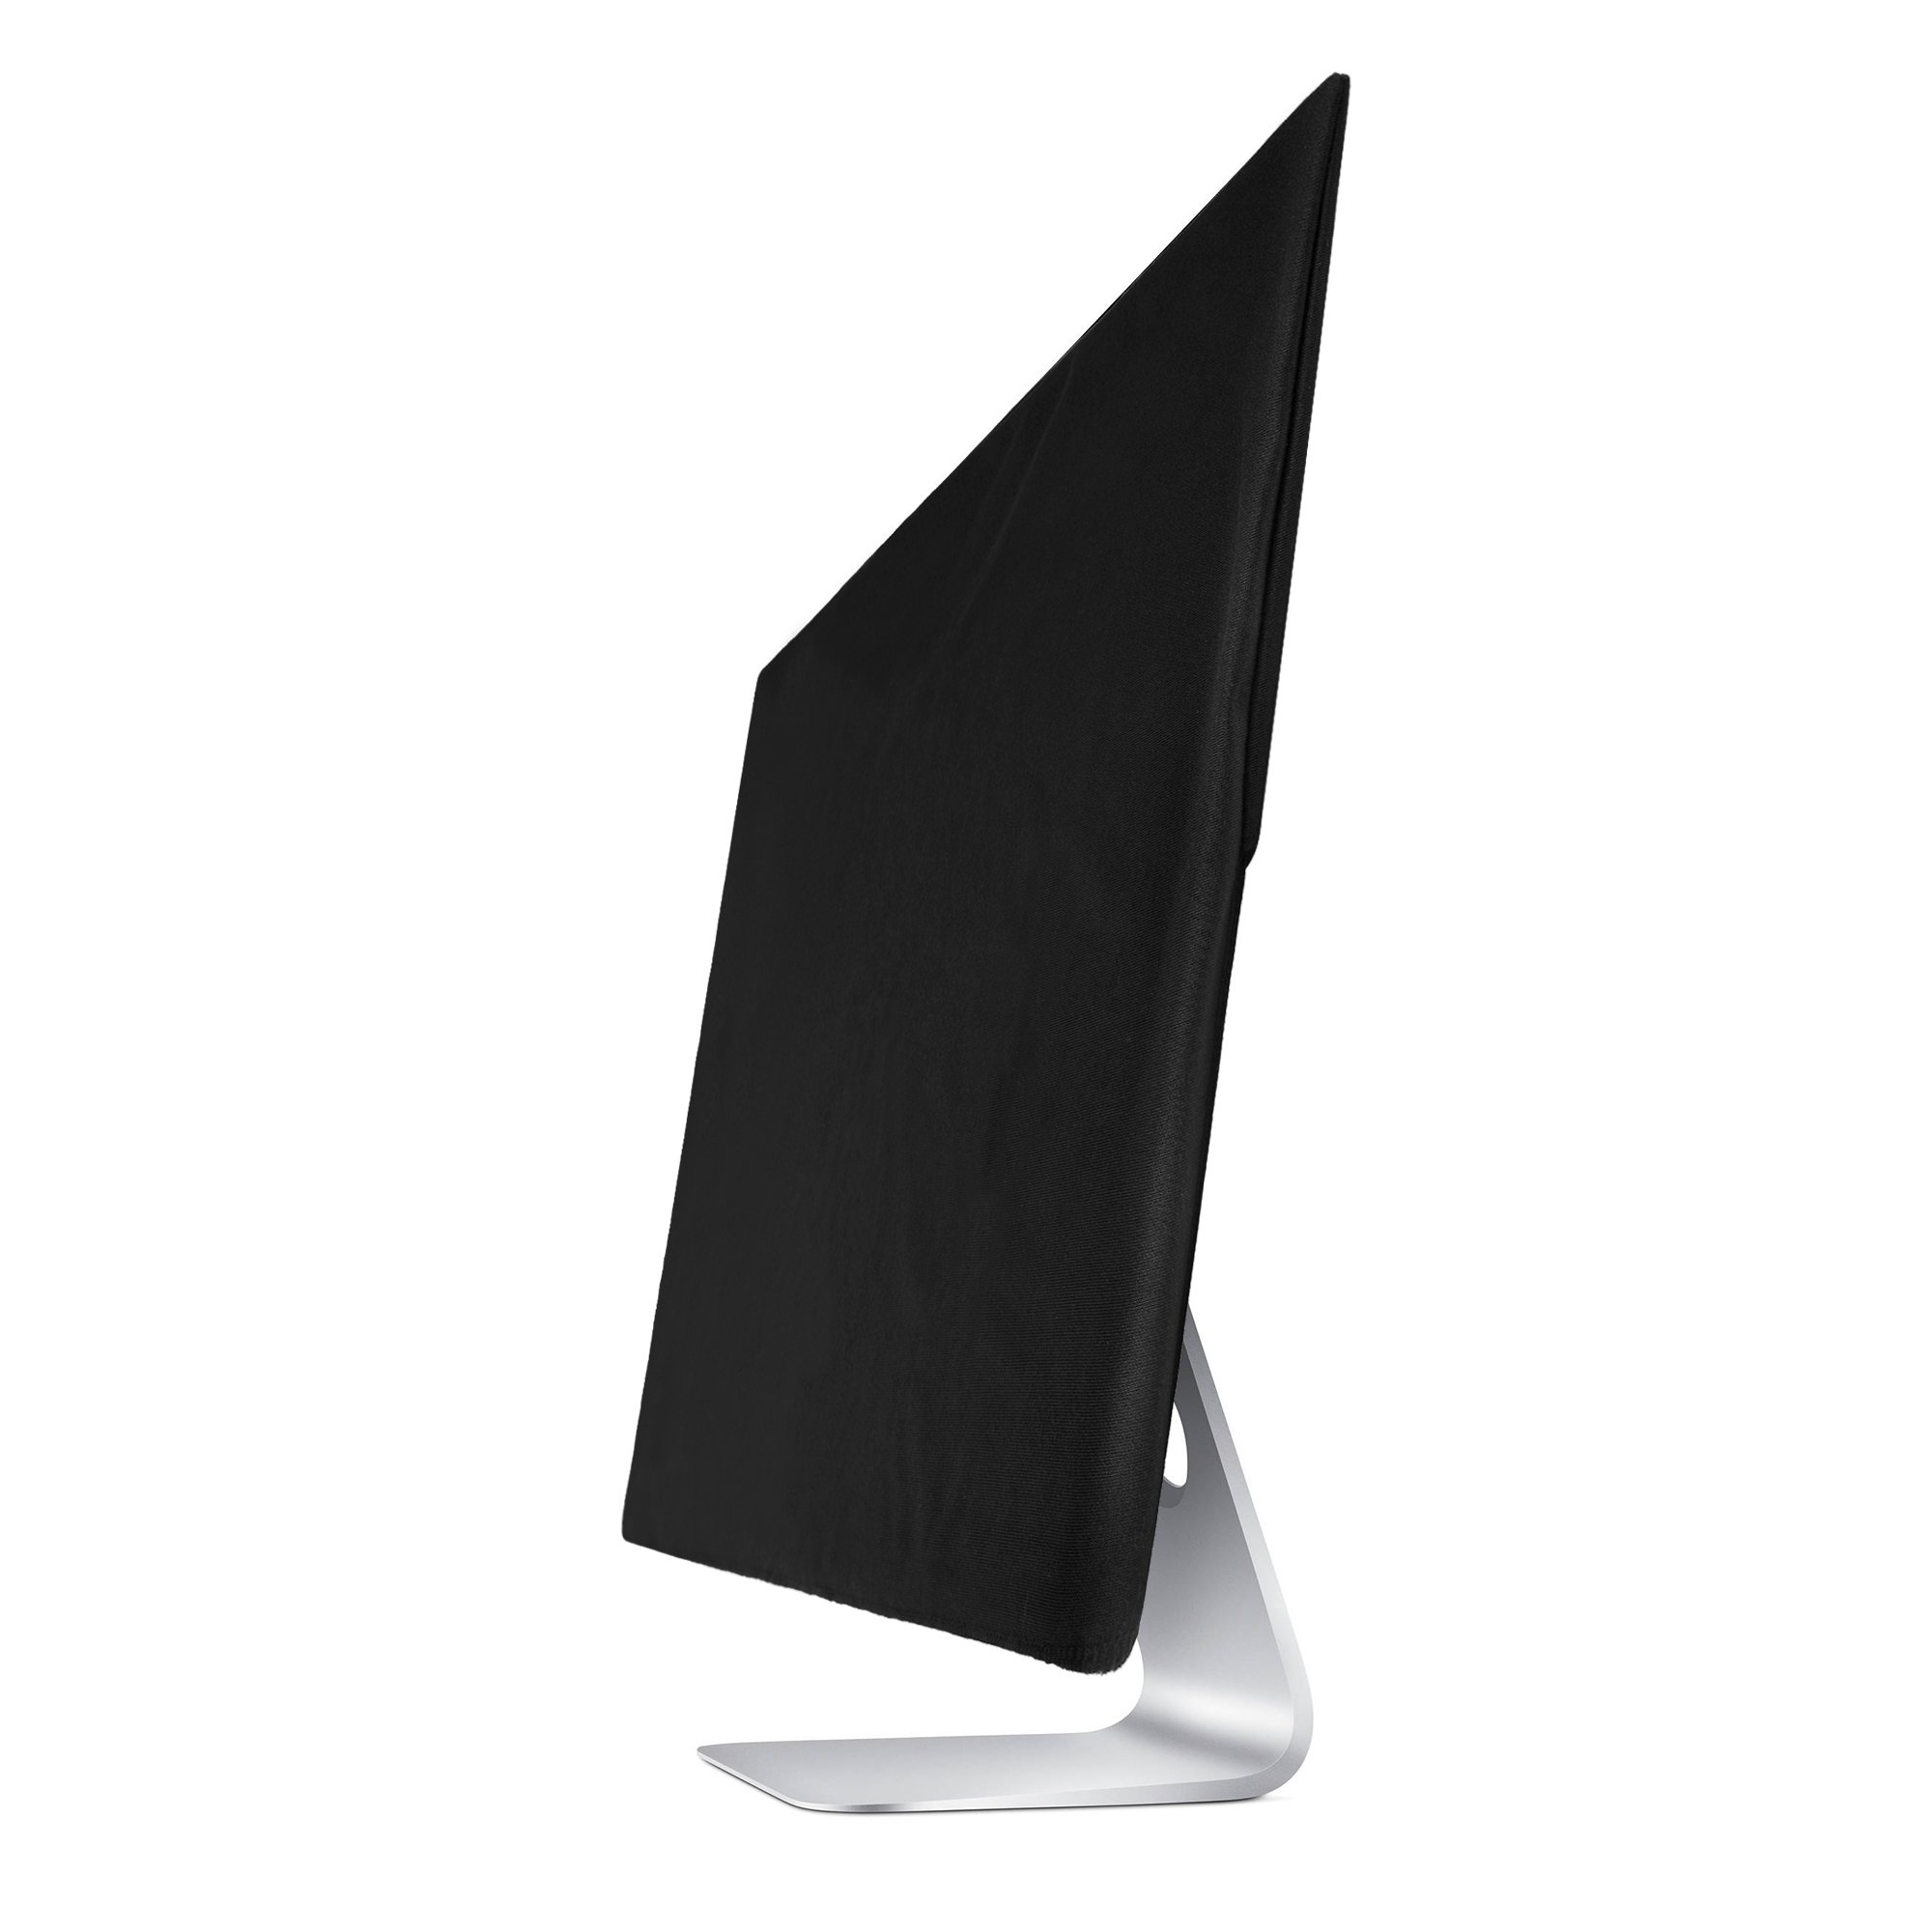 Lightning Power - Premium Protective Dust Screen Cover Sleeve with inner soft lining for Apple iMac (27 Inch, Black)